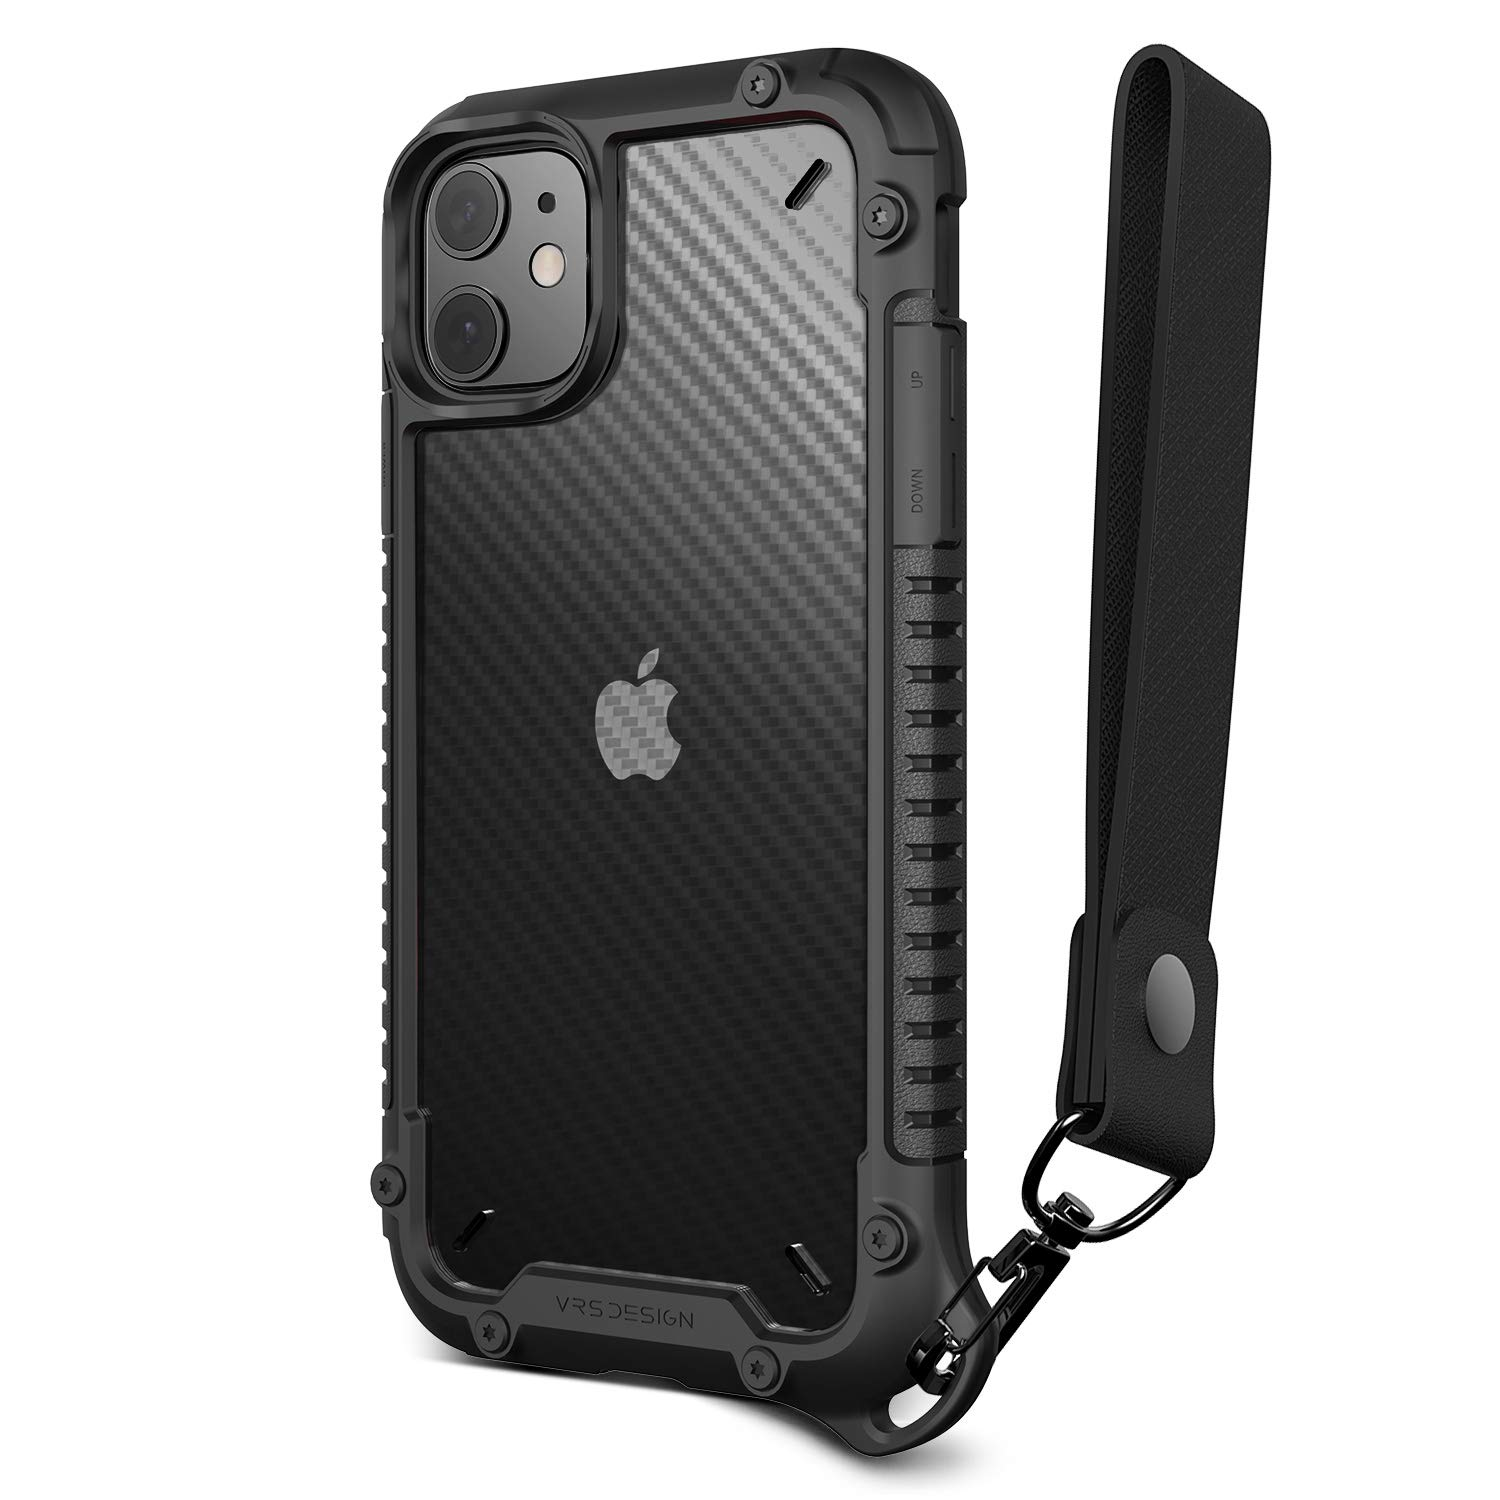 VRS DESIGN Damda Crystal Mixx Pro Compatible for iPhone 11 Case, with Wrist Strap for iPhone 11 6.1 inch (2019)